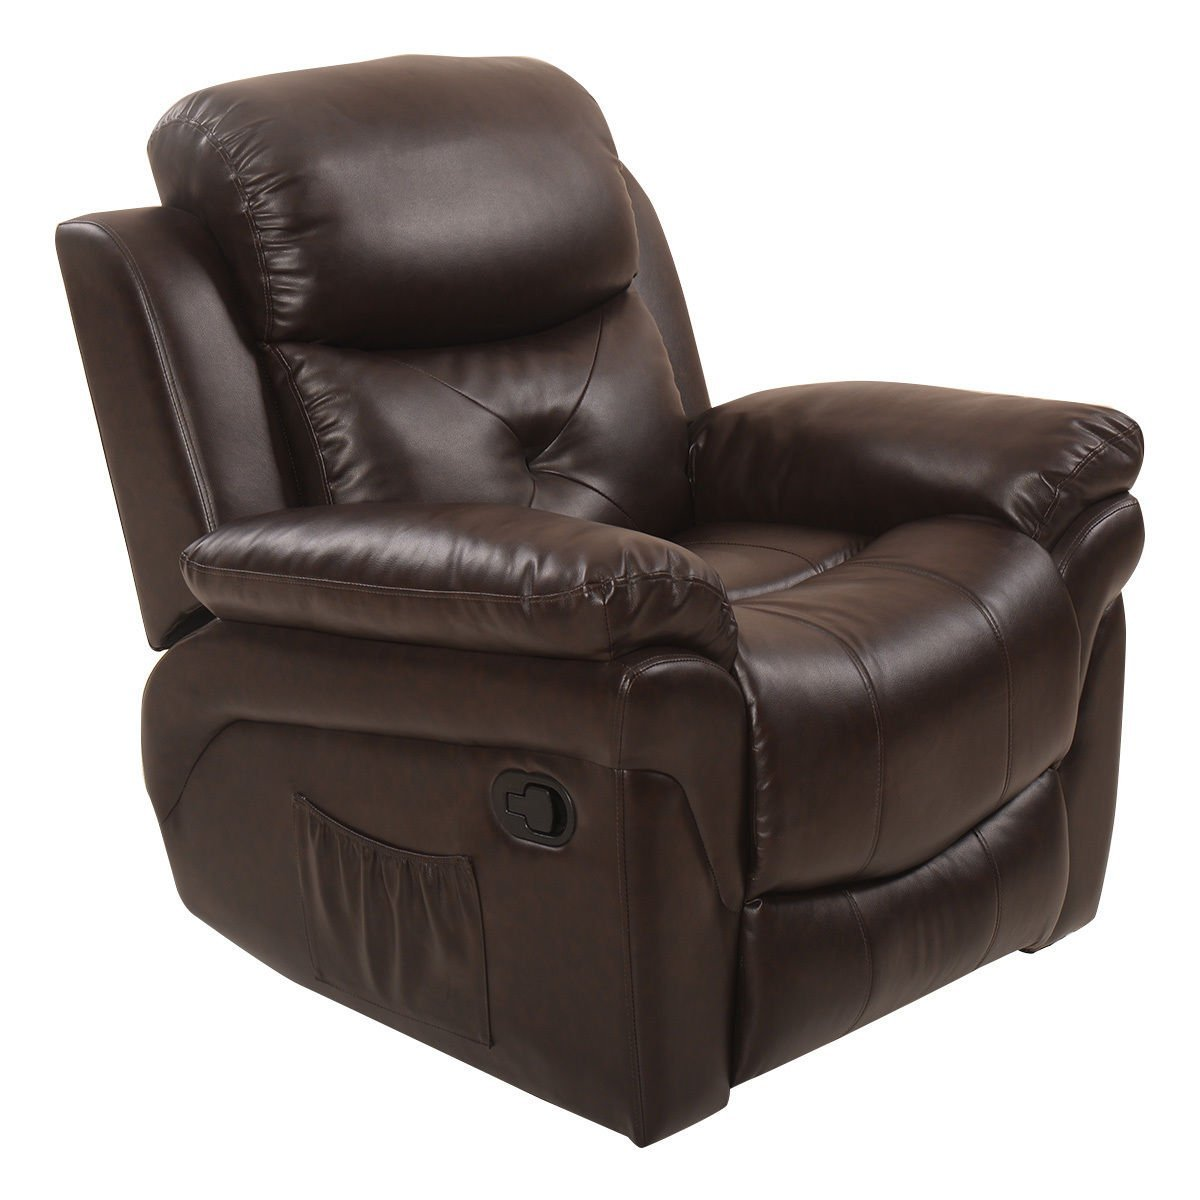 Get Quotations · Tangkula Recliner Massage Sofa Rocking Lounge Chair Heated  Swivel Executive W/ Control (Brown)